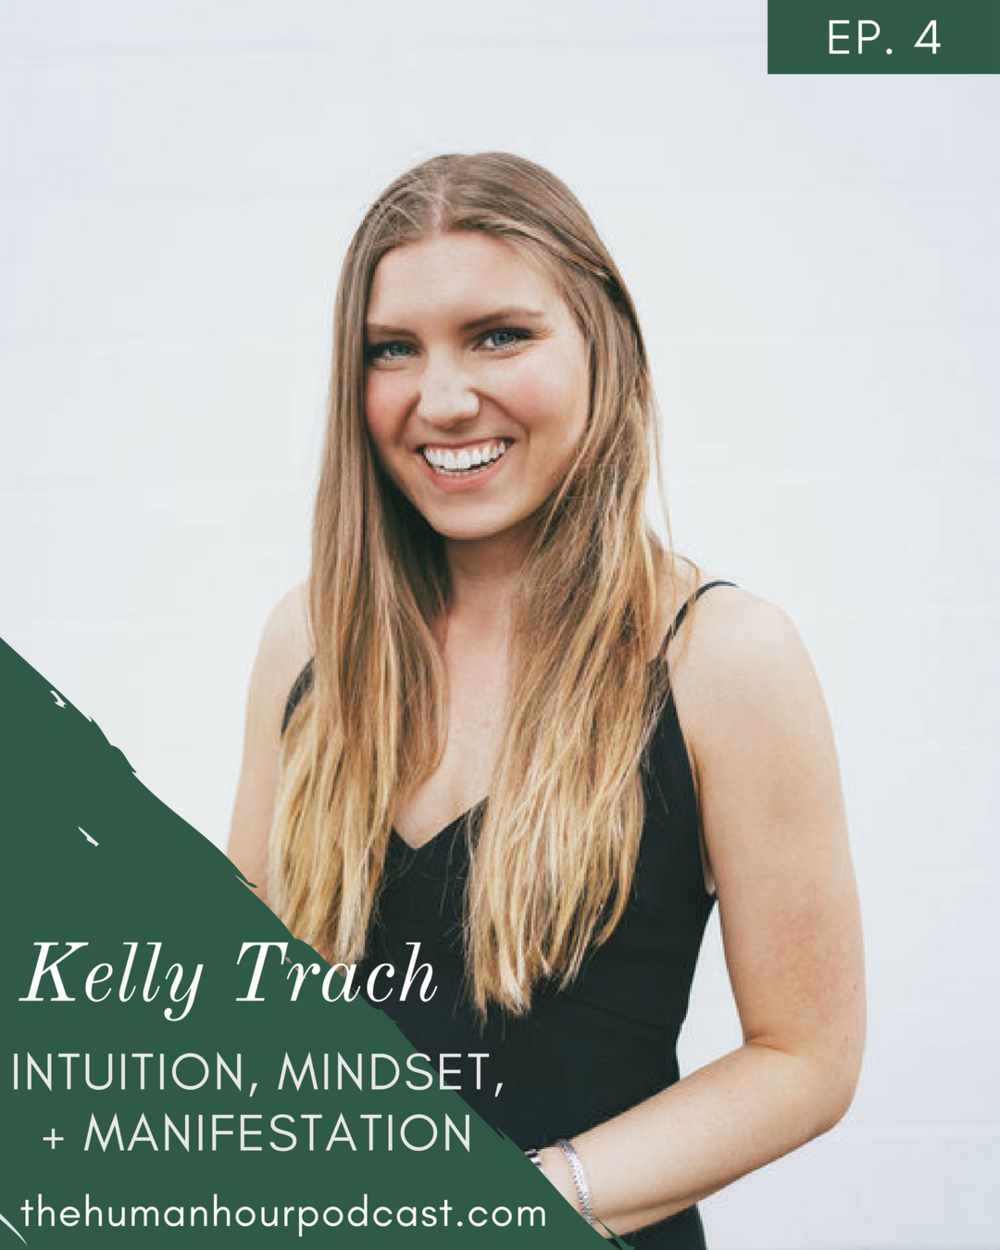 S1 E4: Intuition, Mindset, + Manifestation with Kelly Trach